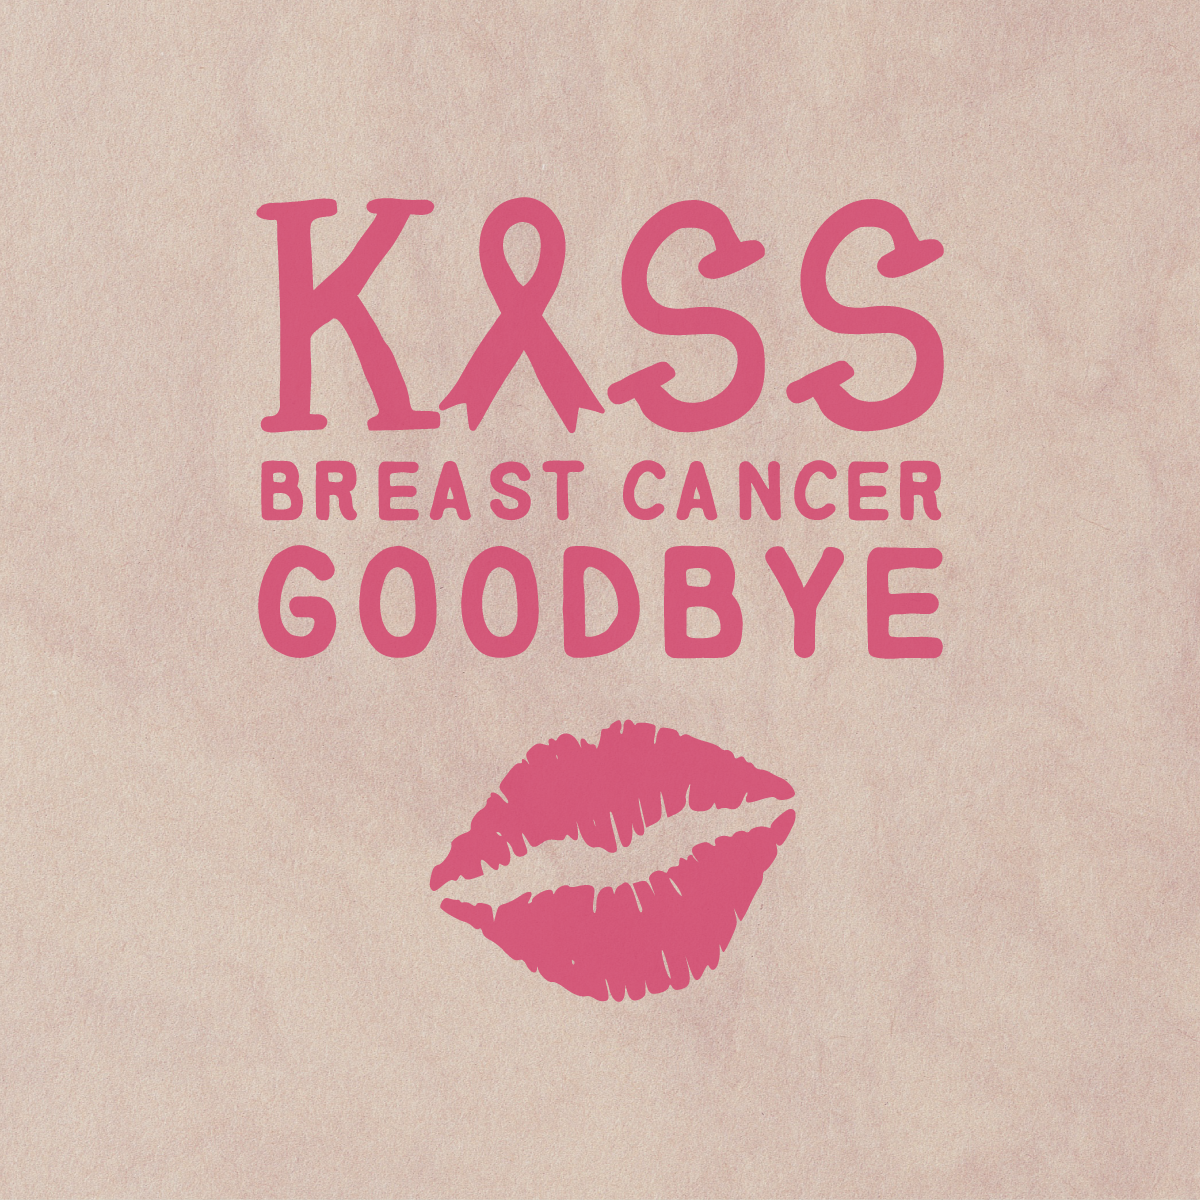 Support the cause and pass the kiss on! #breastcancerawareness #thinkpink